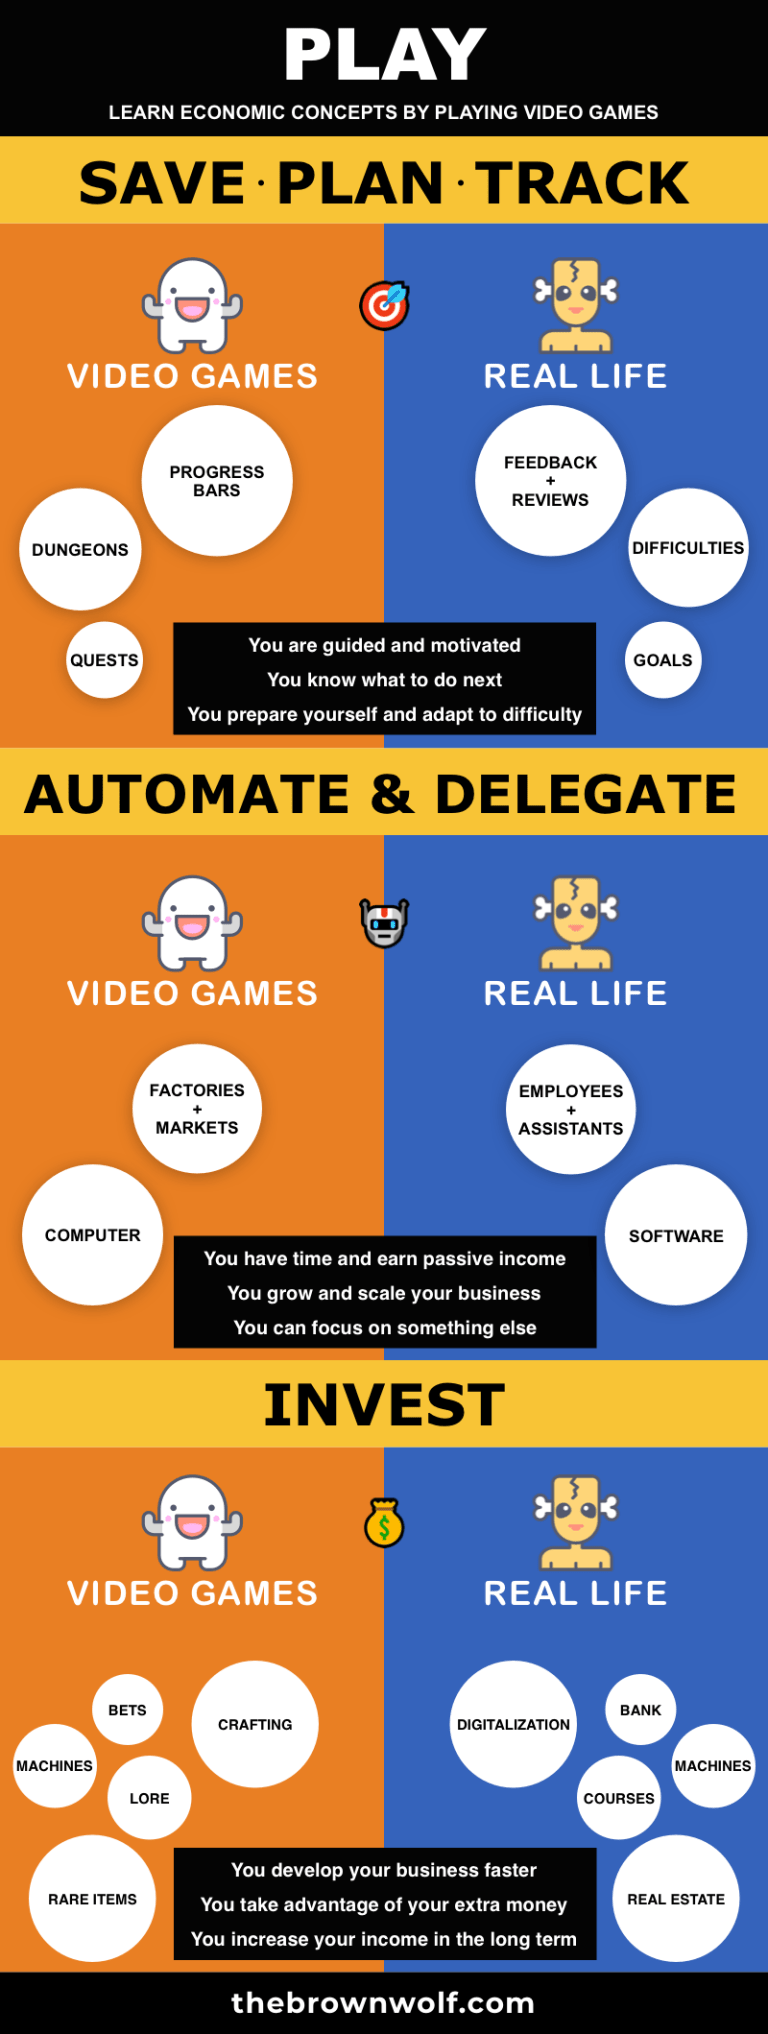 Learn 3 Economic Concepts by Playing Video Games - Illustration - Infographic - Learn 3 Economic Concepts by Playing Video Games